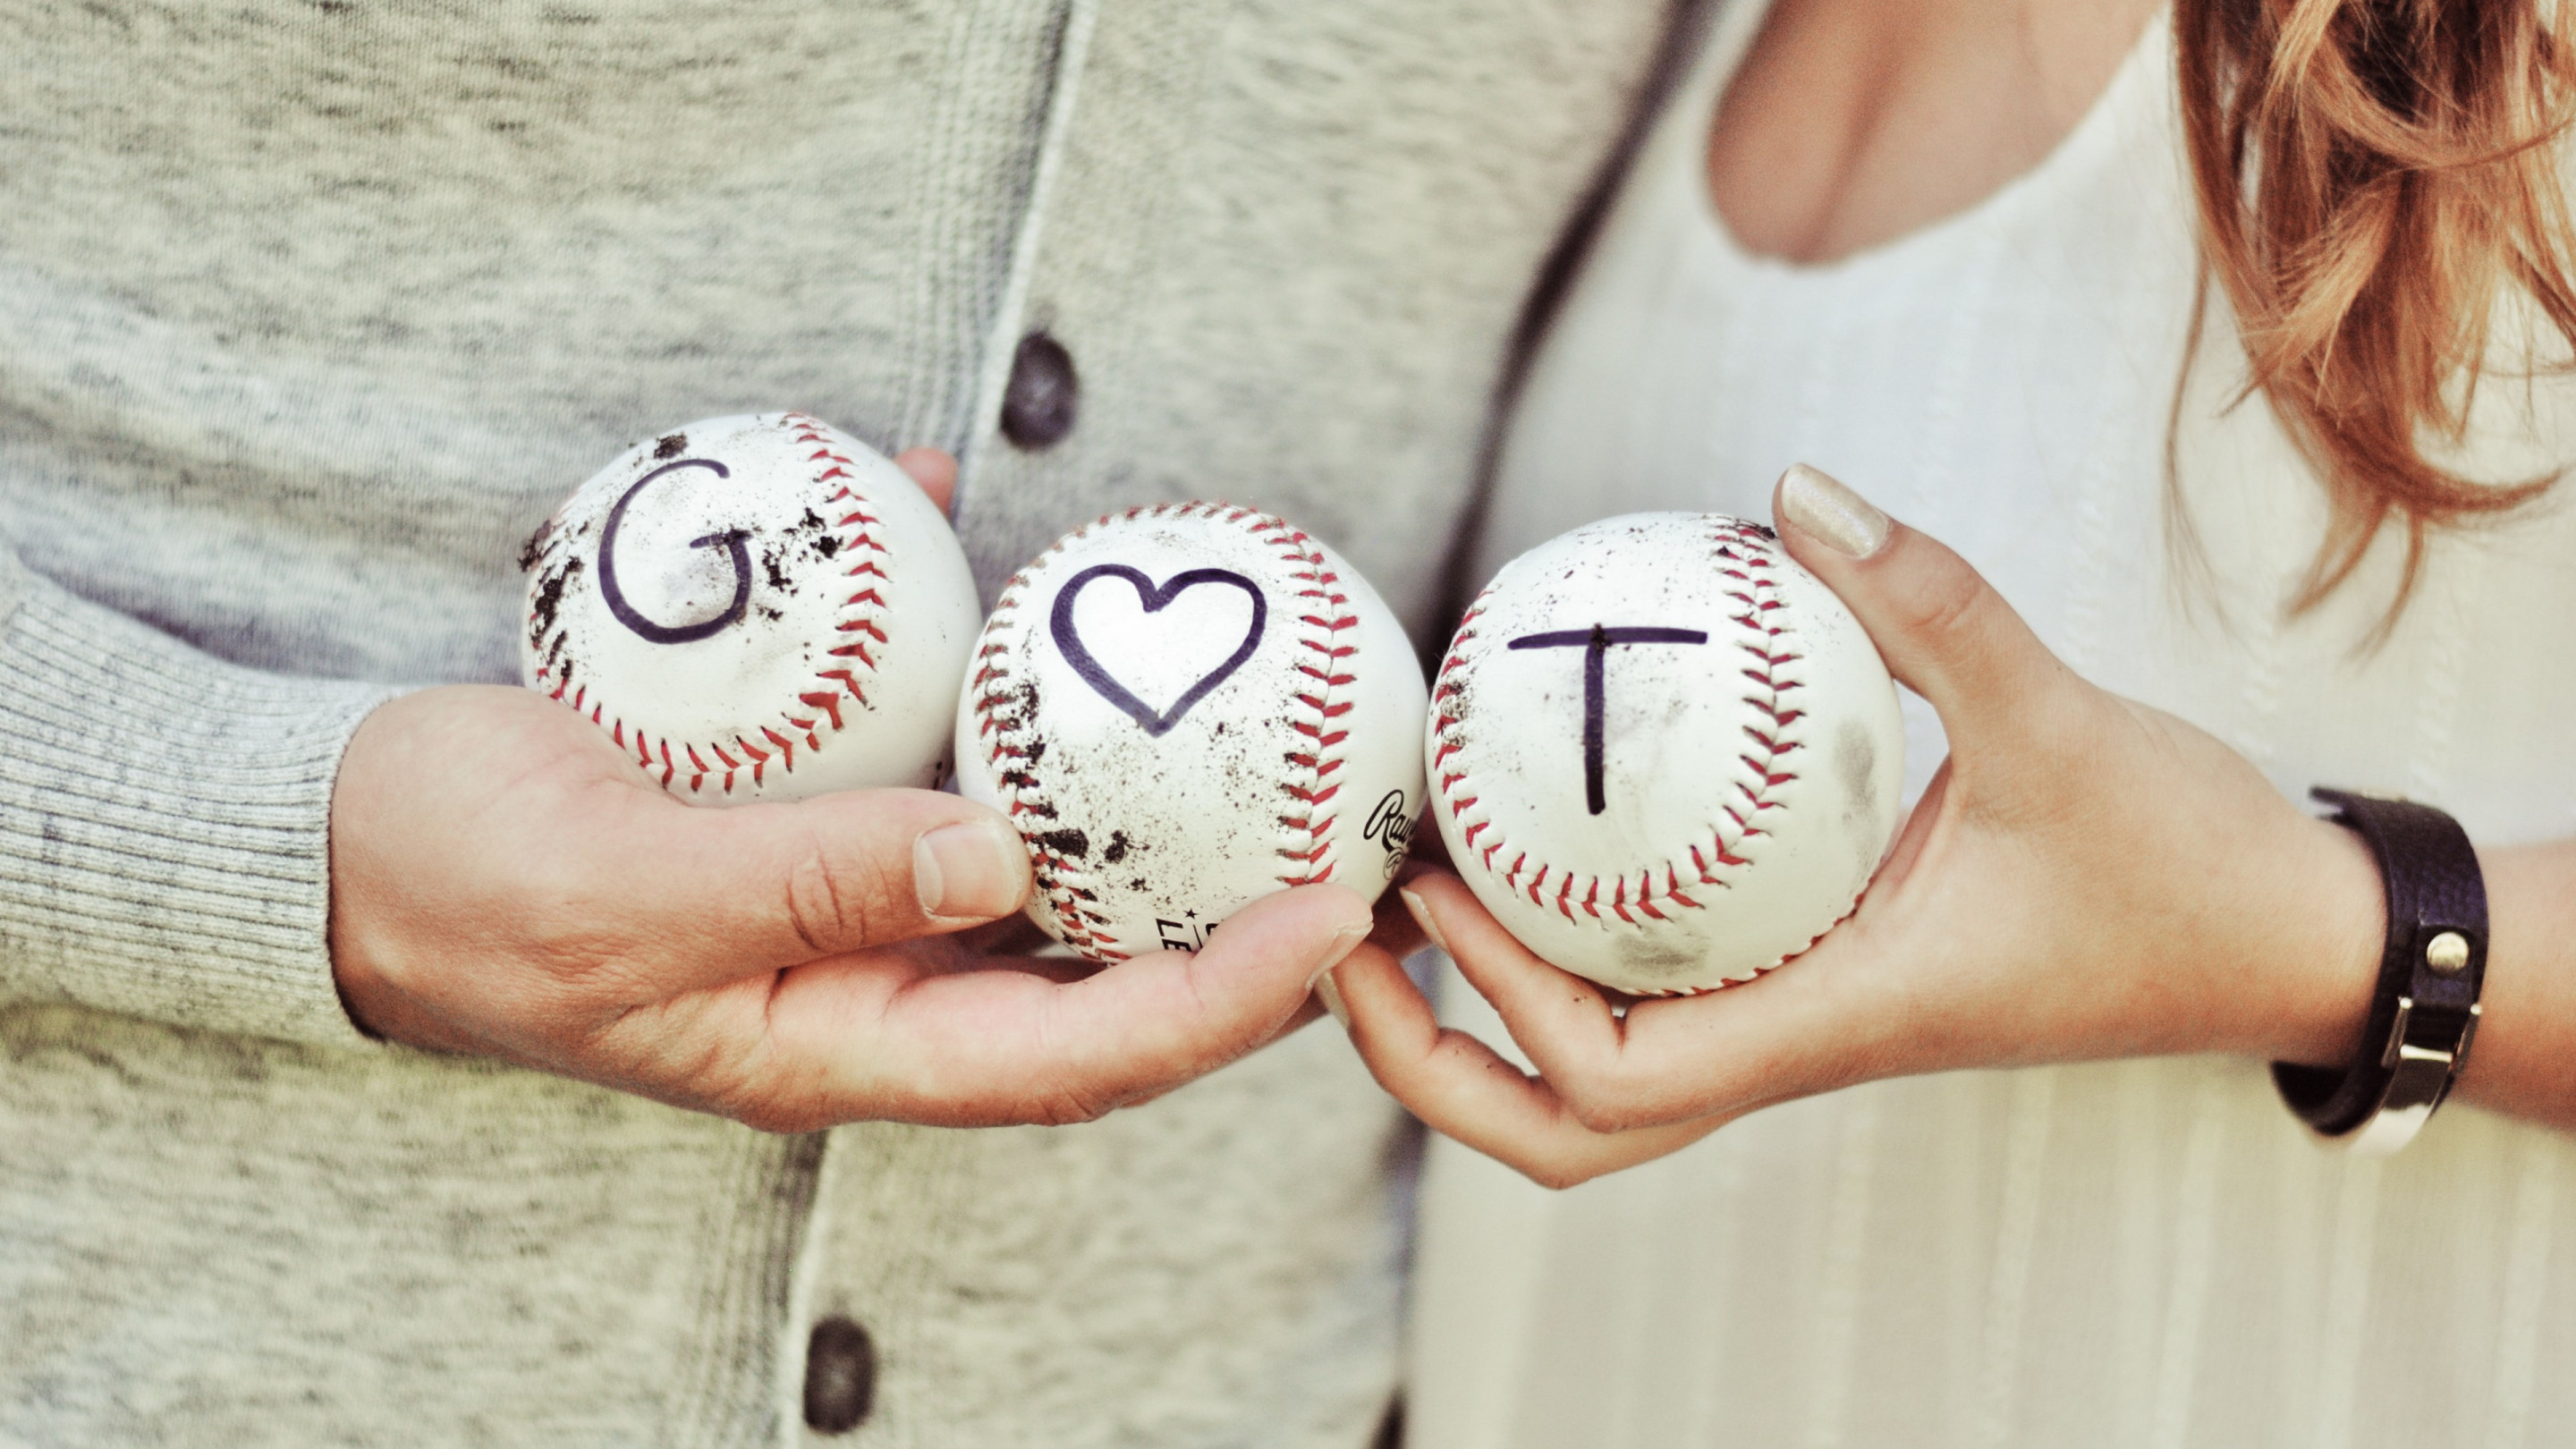 Lovers, couple, baseball wallpaper 2880x1620